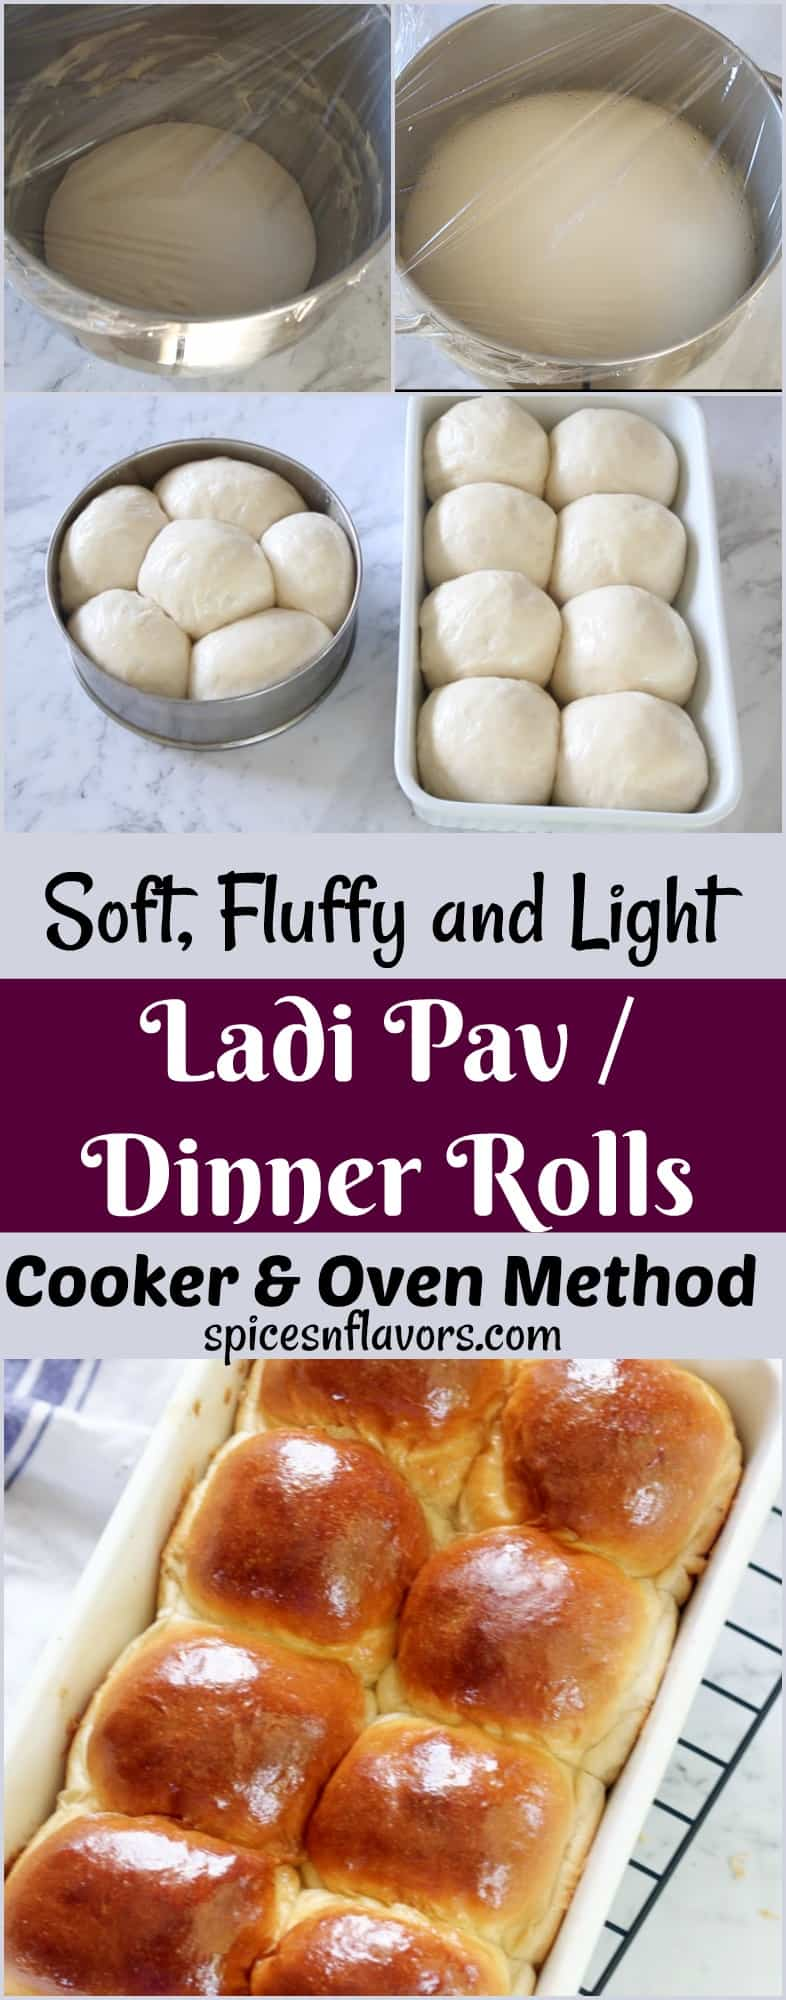 pin image of laadi pav dinner rolls post